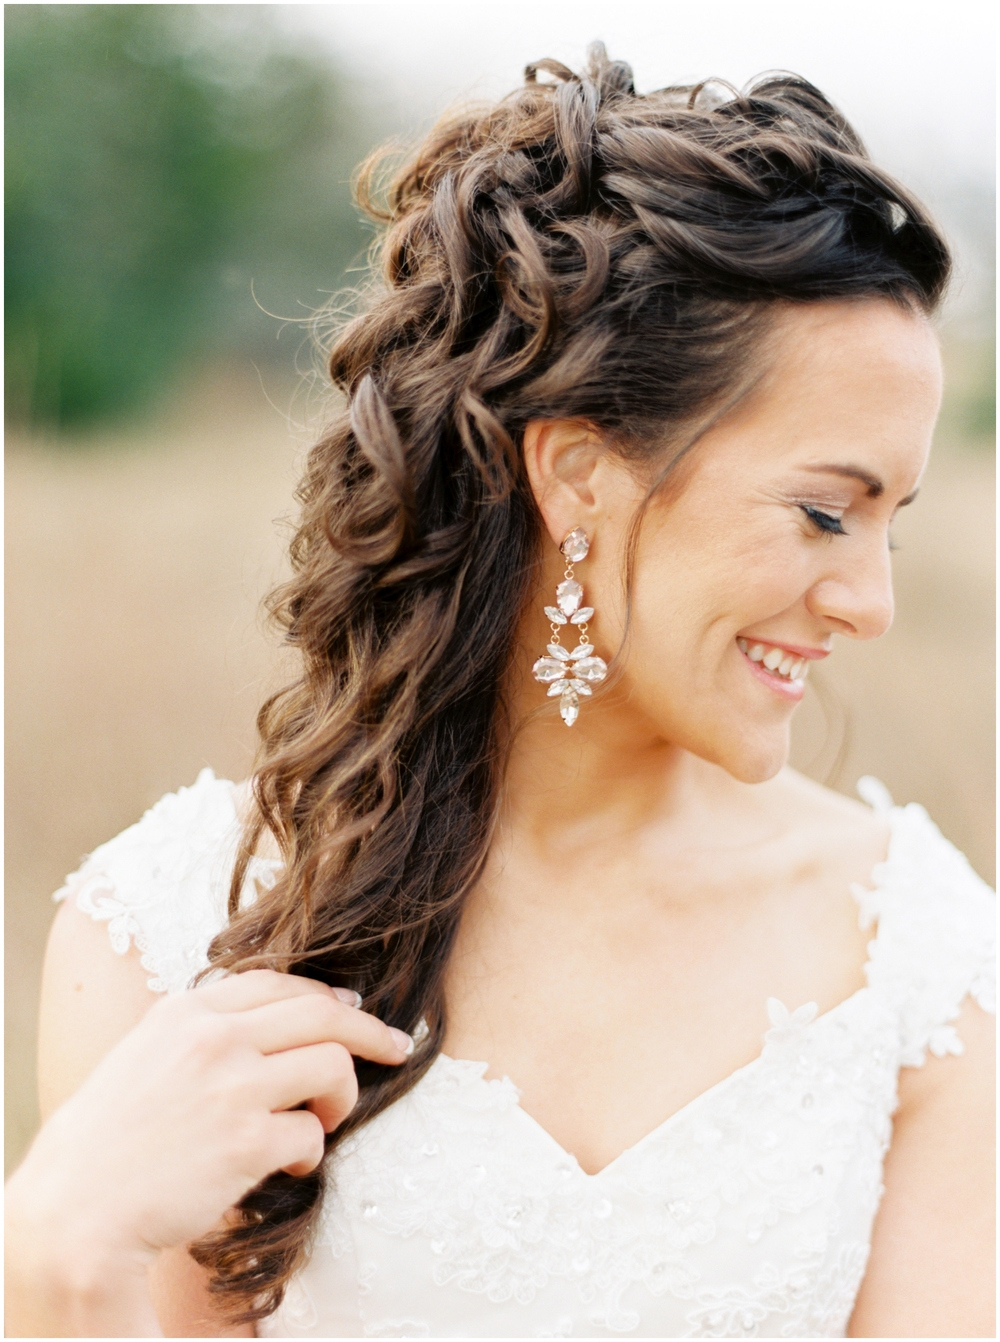 Sarah Best Photography - Emily's Bridals-129_STP.jpg